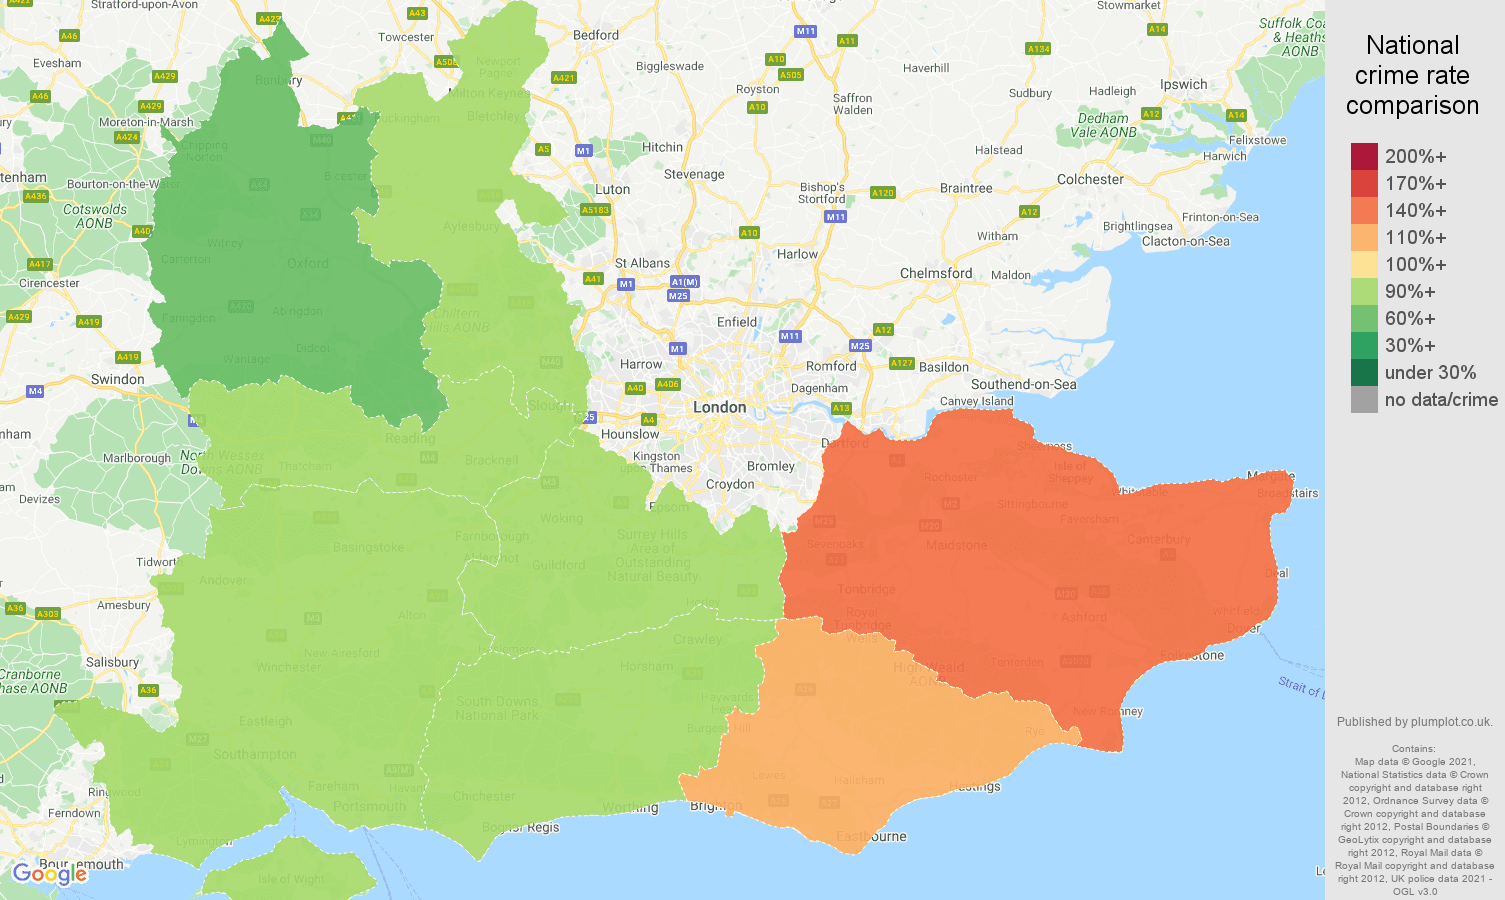 South East criminal damage and arson crime rate comparison map